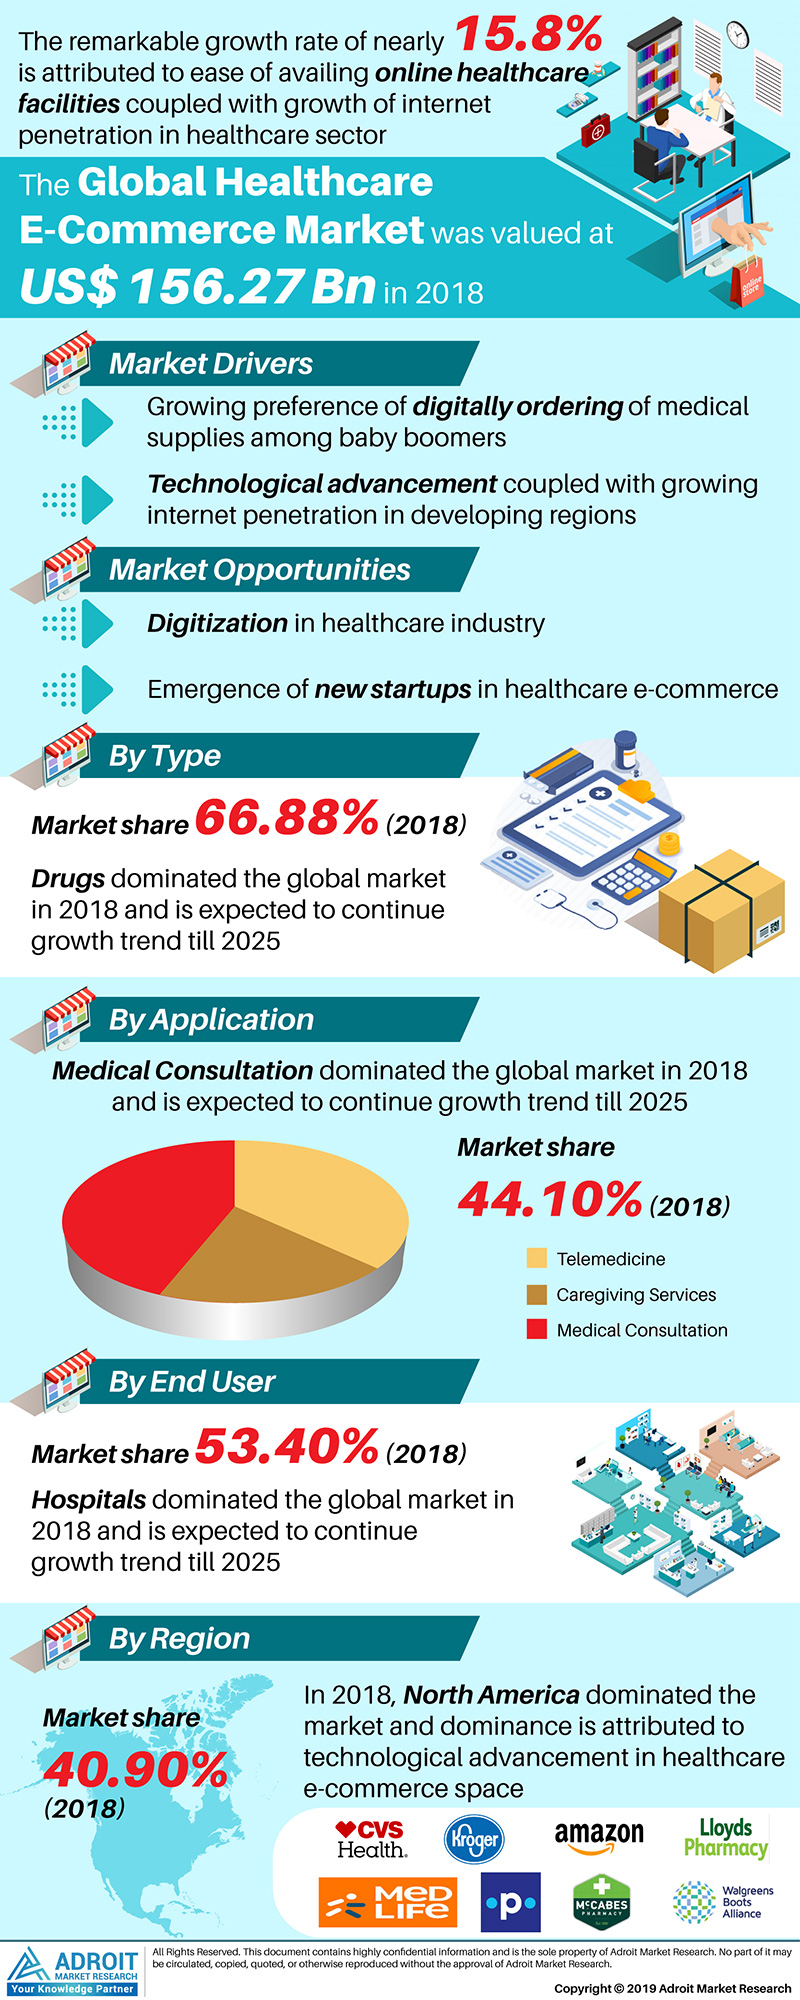 Global Healthcare E-Commerce Market Size 2017 By Type, Application, End-Use, Region and Forecast 2018 to 2025